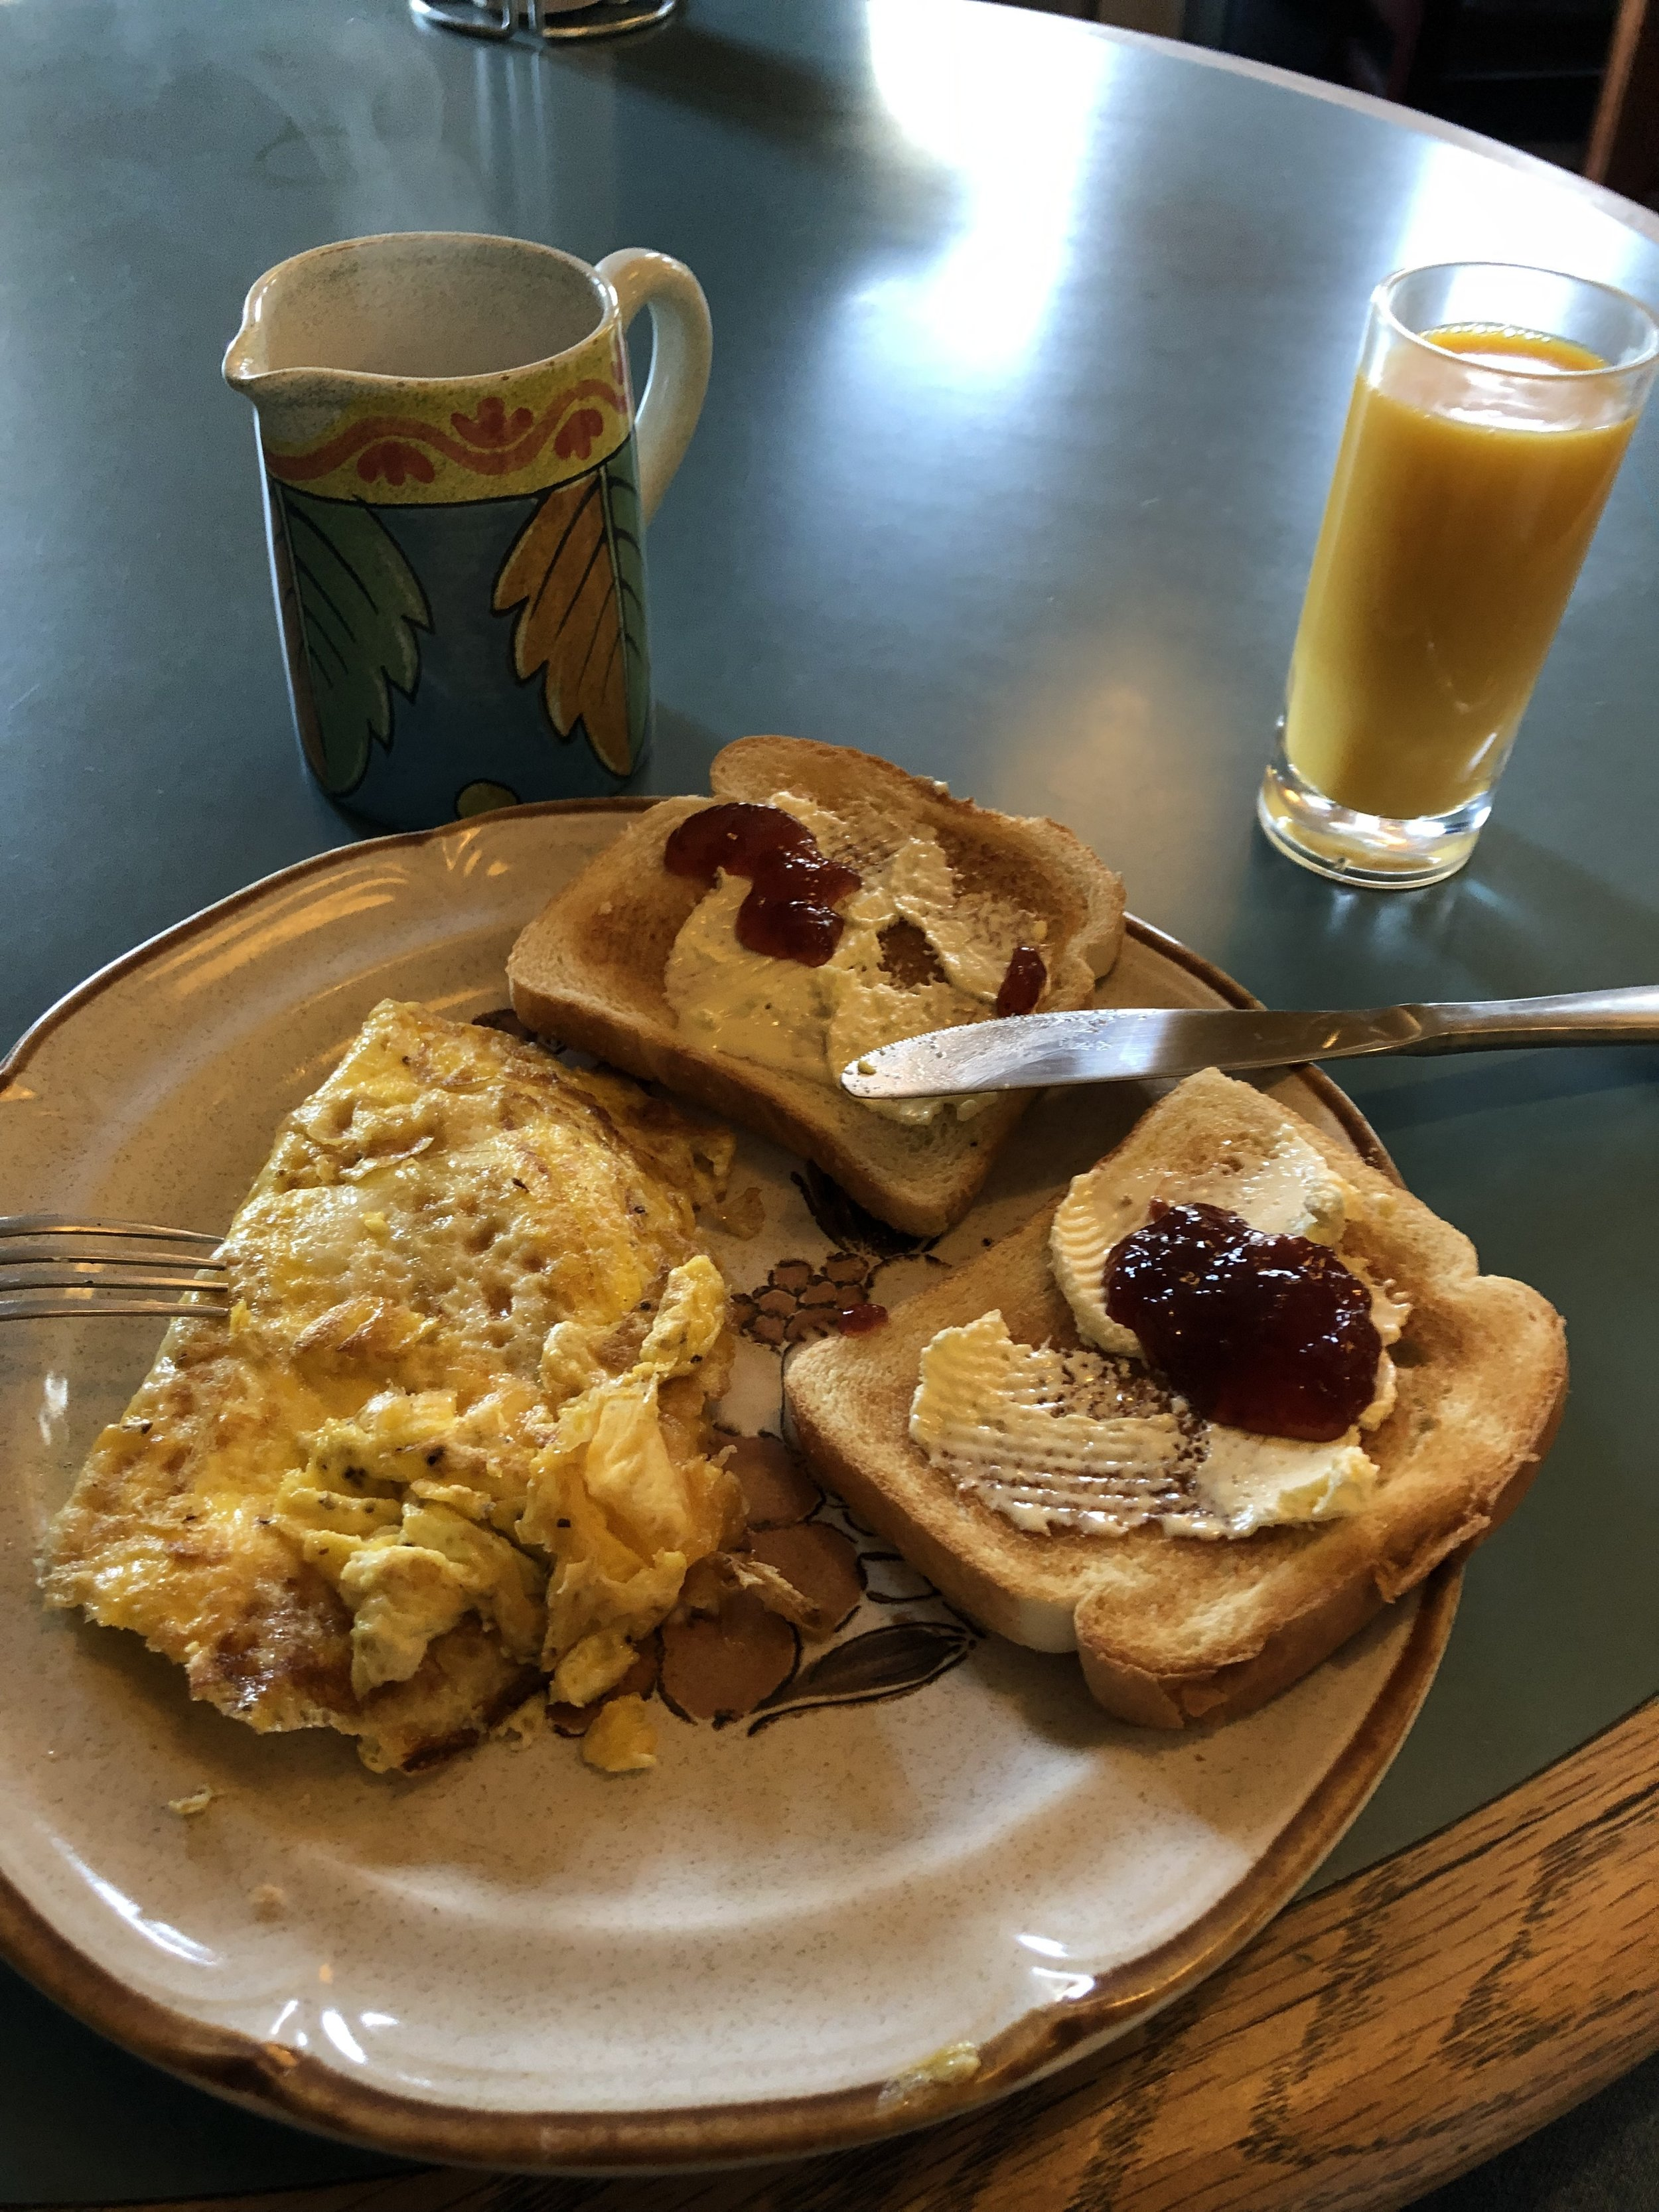 Everything here was provided by the hostel (cost included in the $35 a night charge) for me to make, other than the cheese which I added to the omelet. However, providing whole eggs isn't that common in my experience. Seattle's Green Tortoise Hostel did.